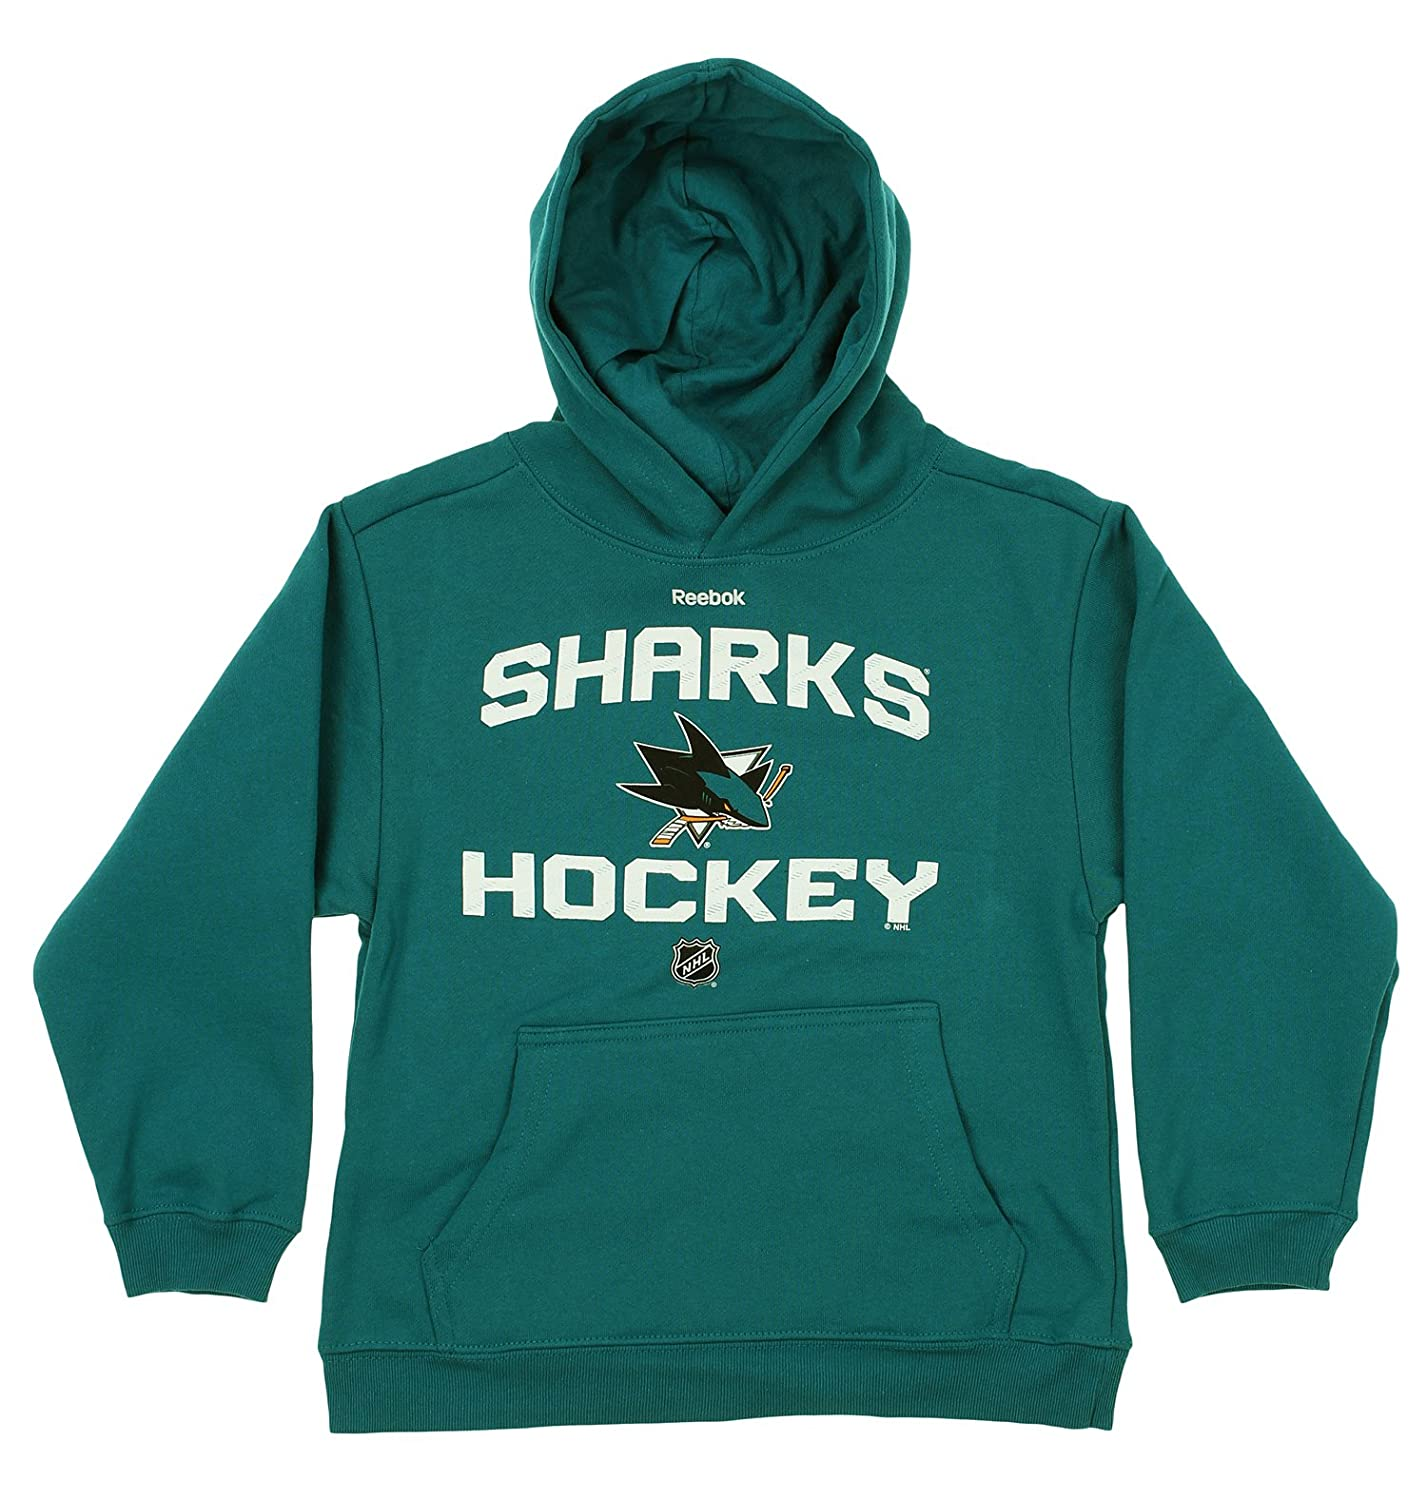 Outerstuff NHL Youth Boys San Jose Sharks Team Logo Hoodie, Teal